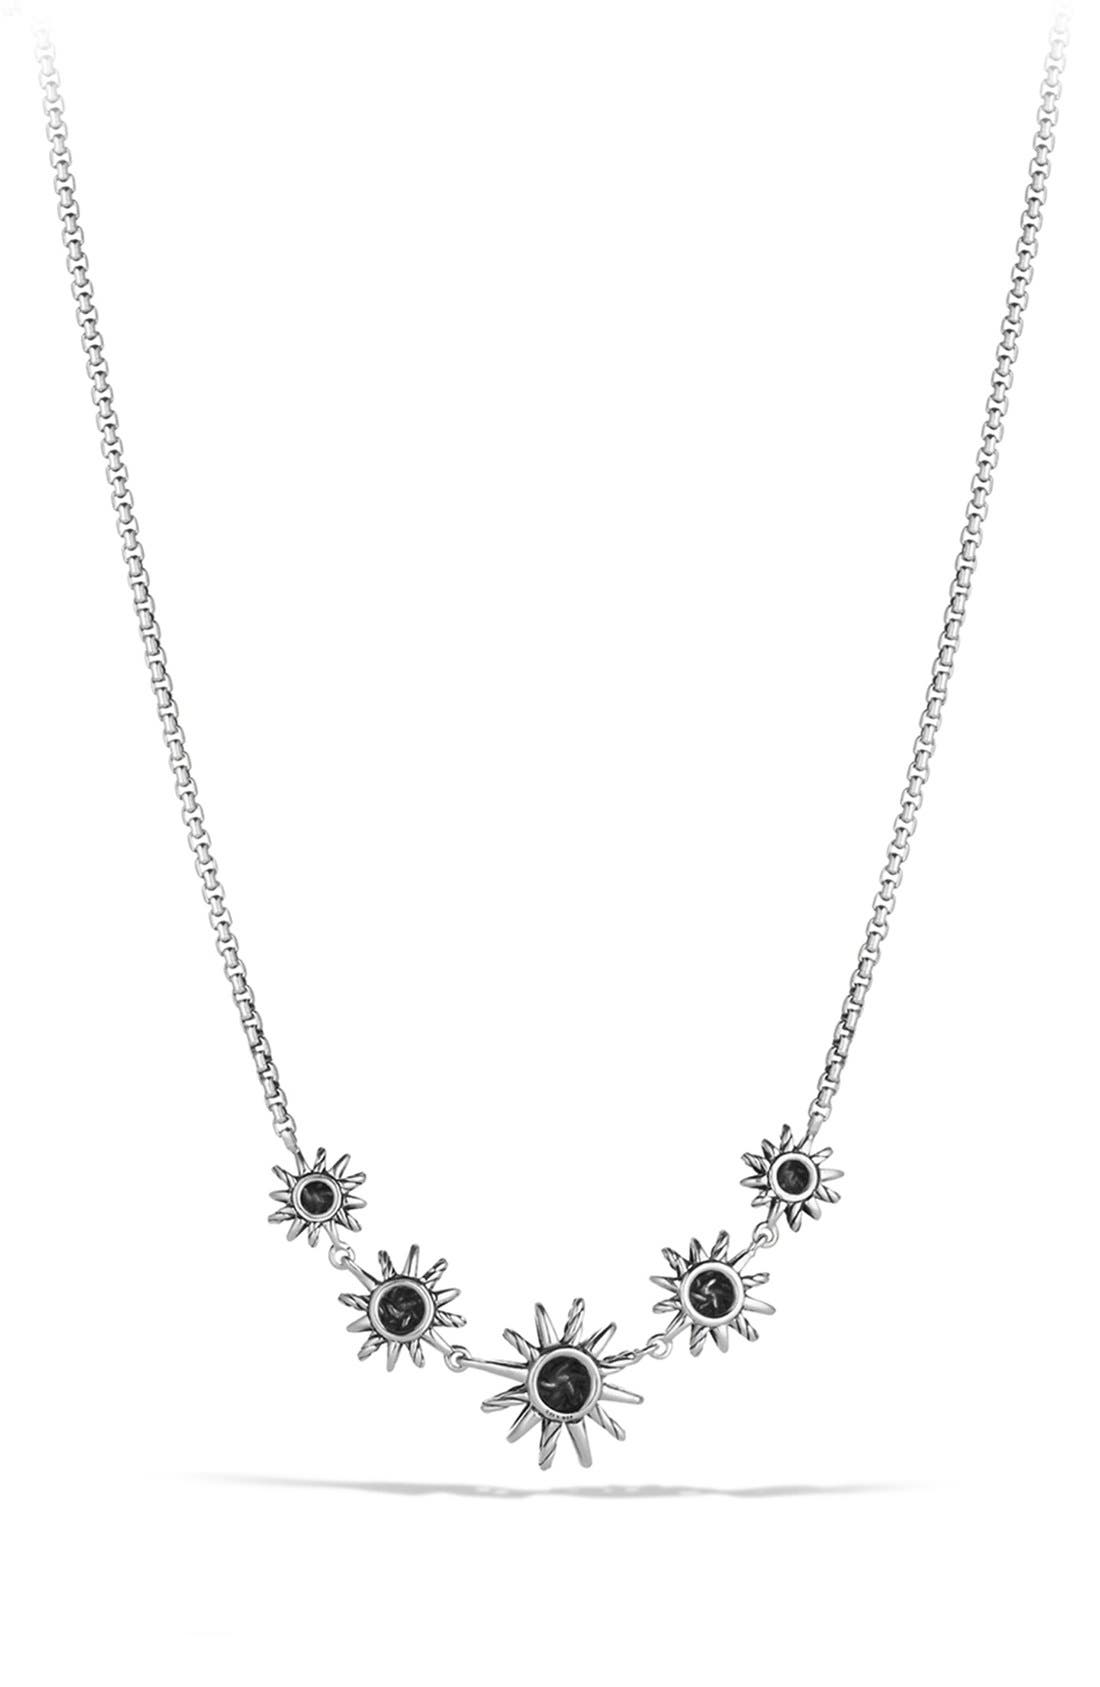 'Starburst' Five-Station Necklace with Diamonds,                             Alternate thumbnail 3, color,                             STERLING SILVER